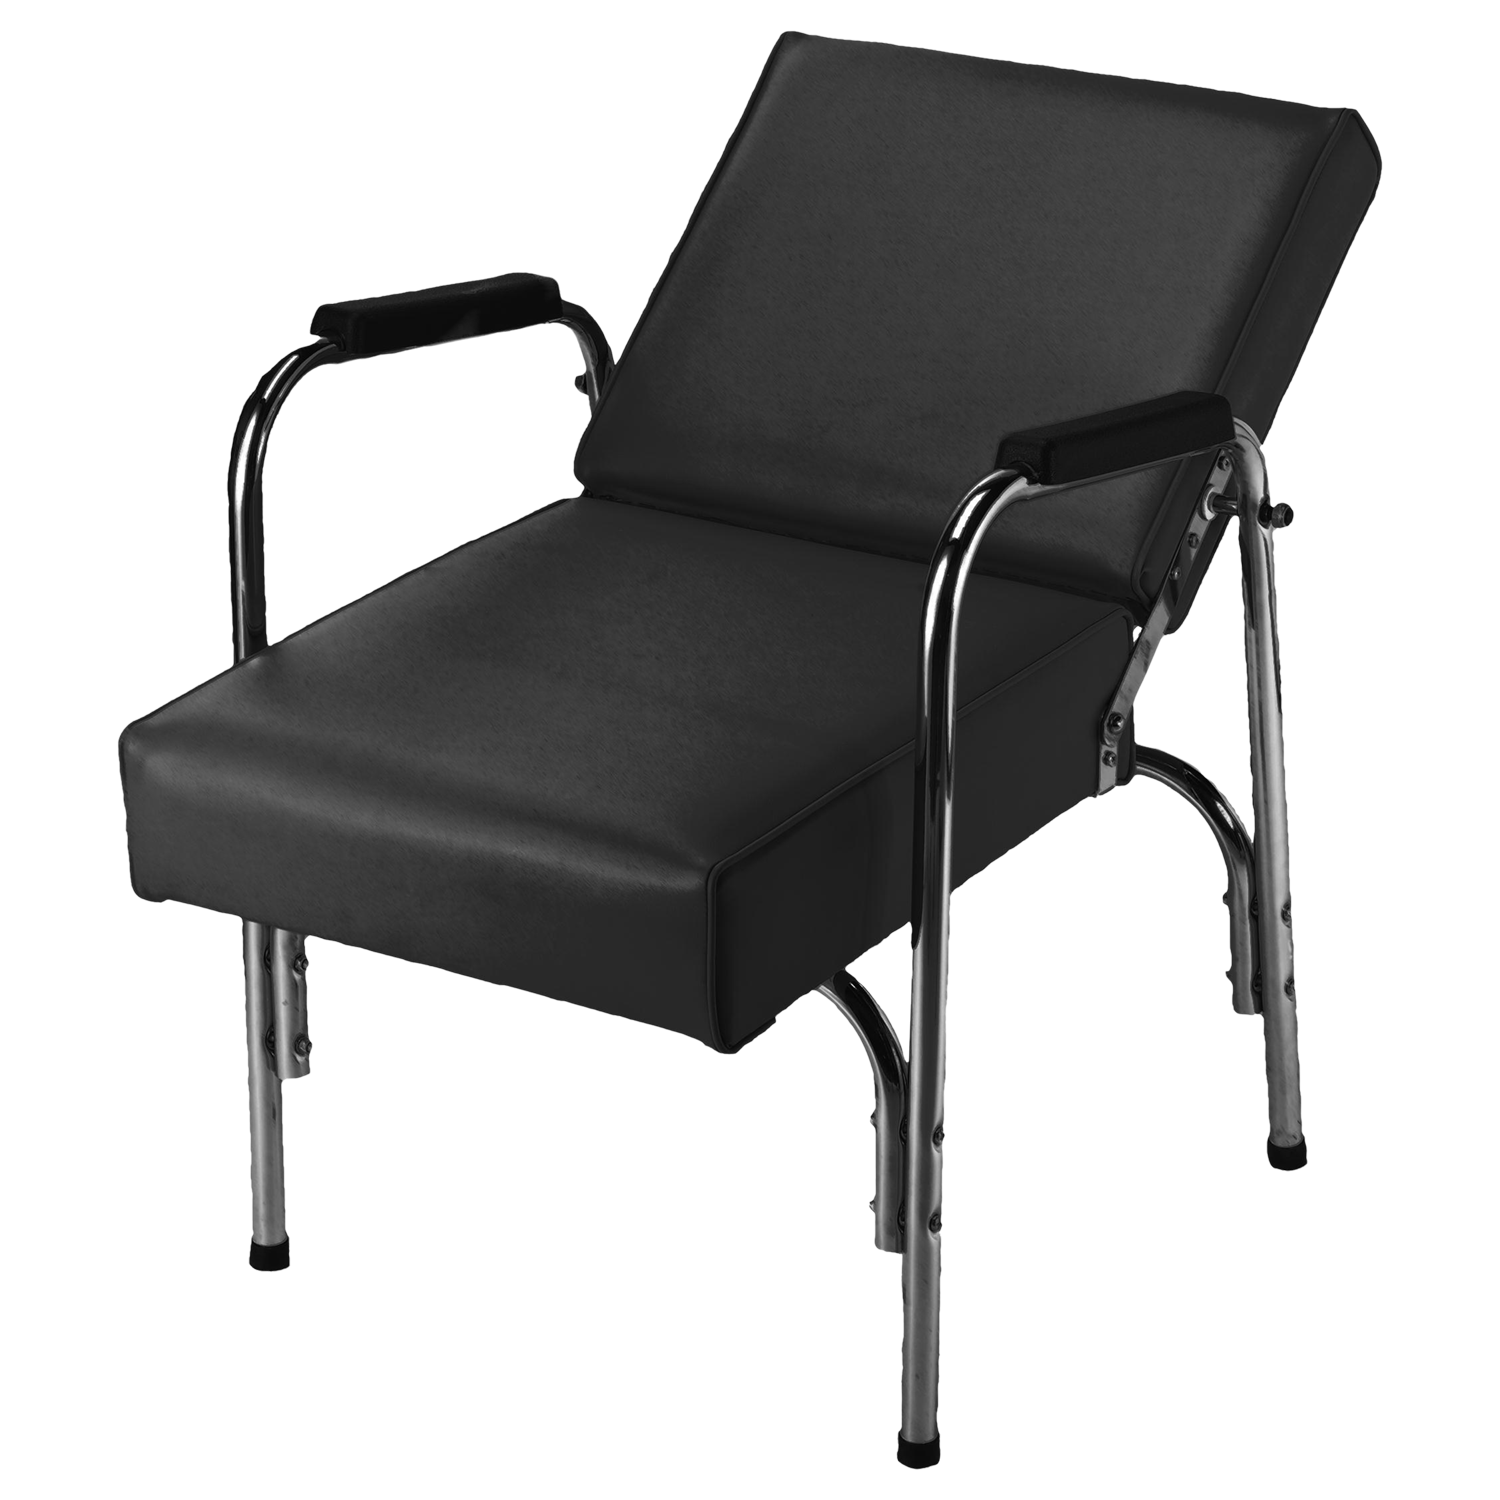 salon spa chairs